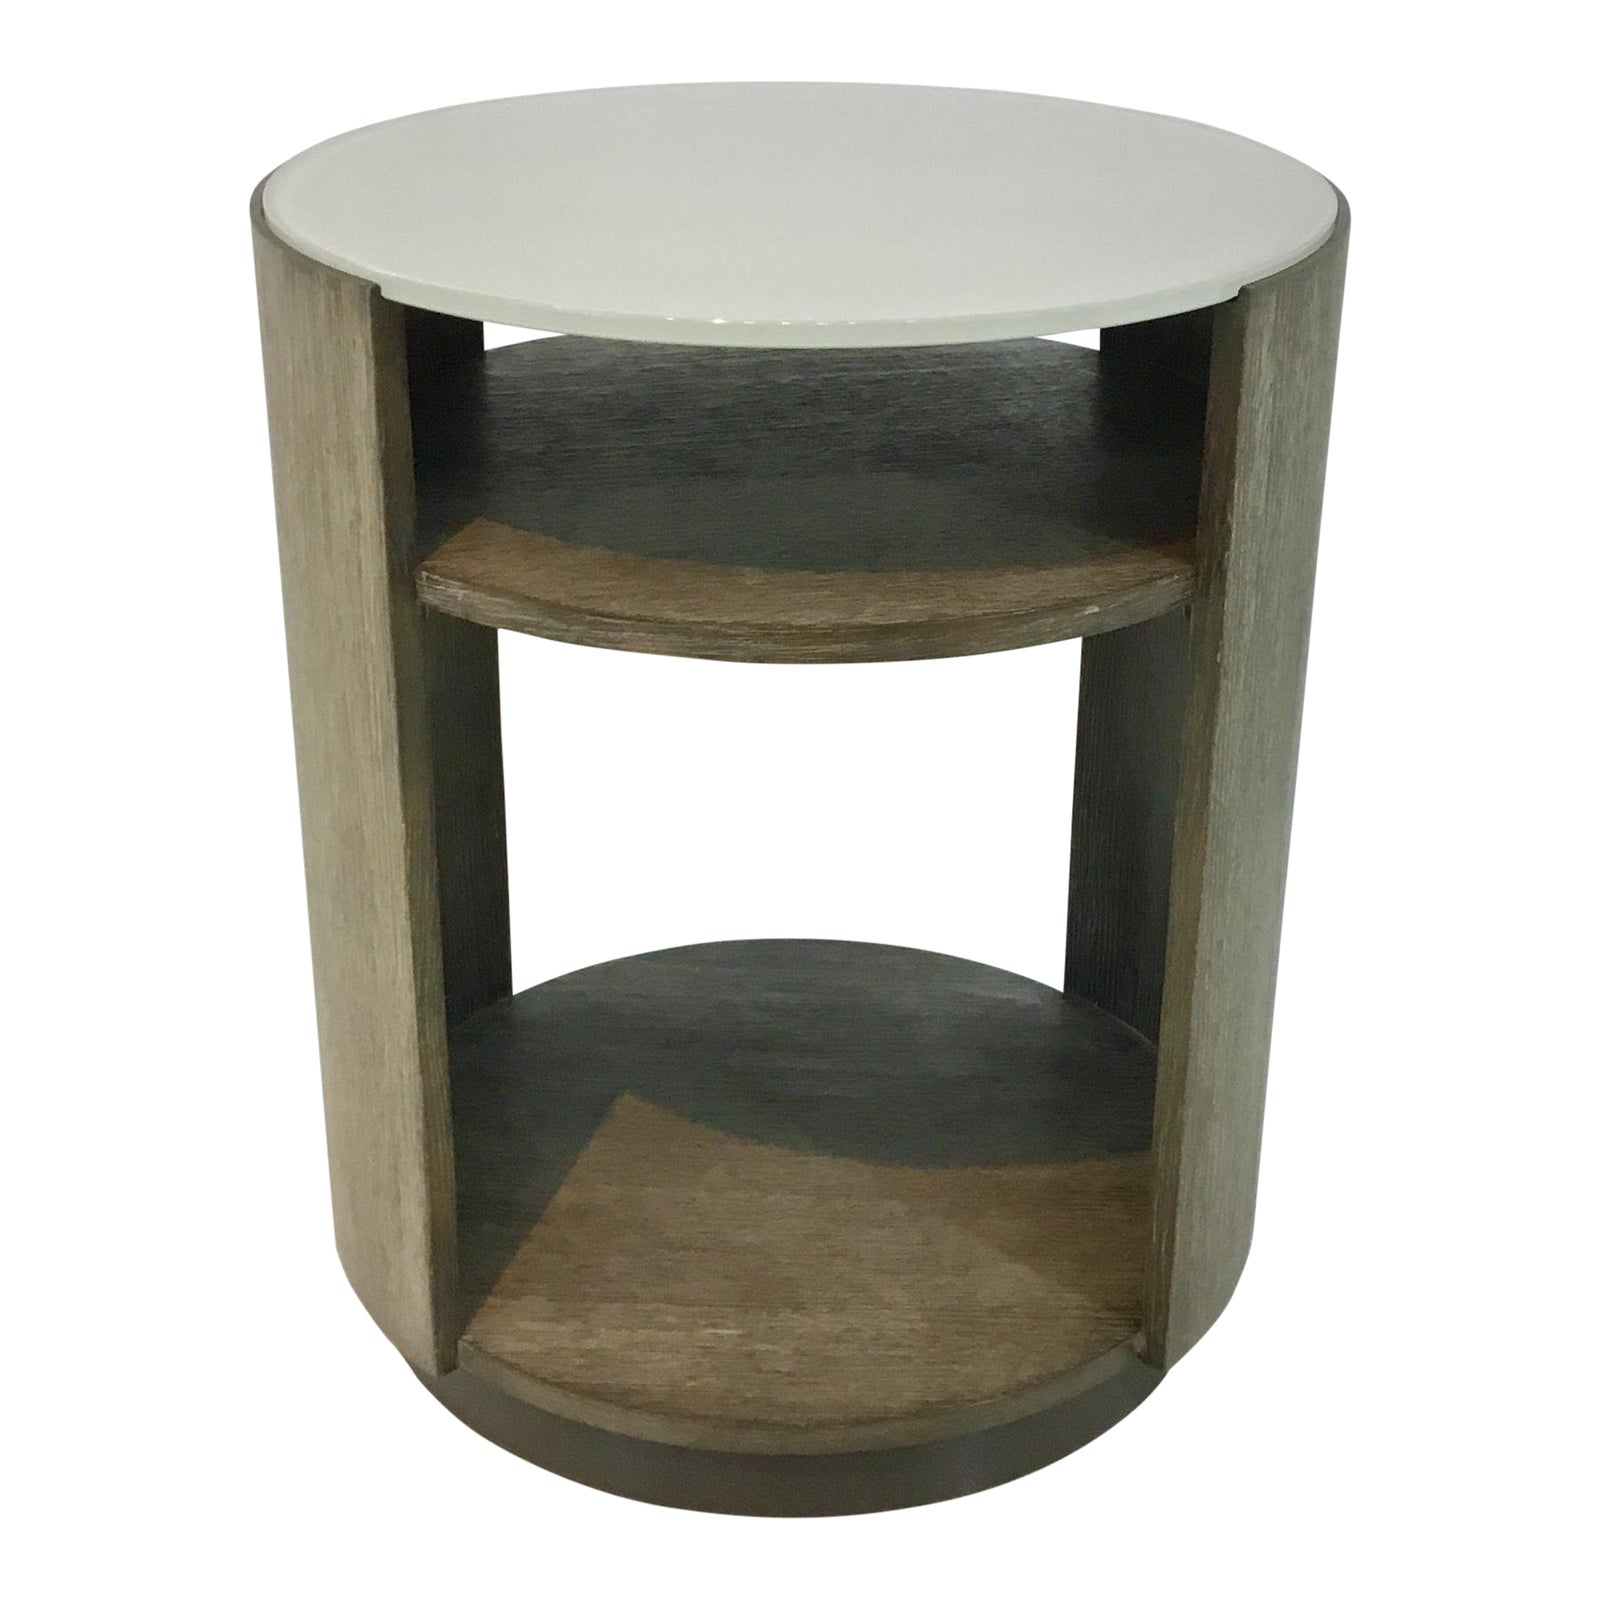 caracole fusion drum wood and frosted glass end table chairish kmart promotional code ethan allen chesterfield sofa handmade dog cage dark grey distressed furniture amish mission